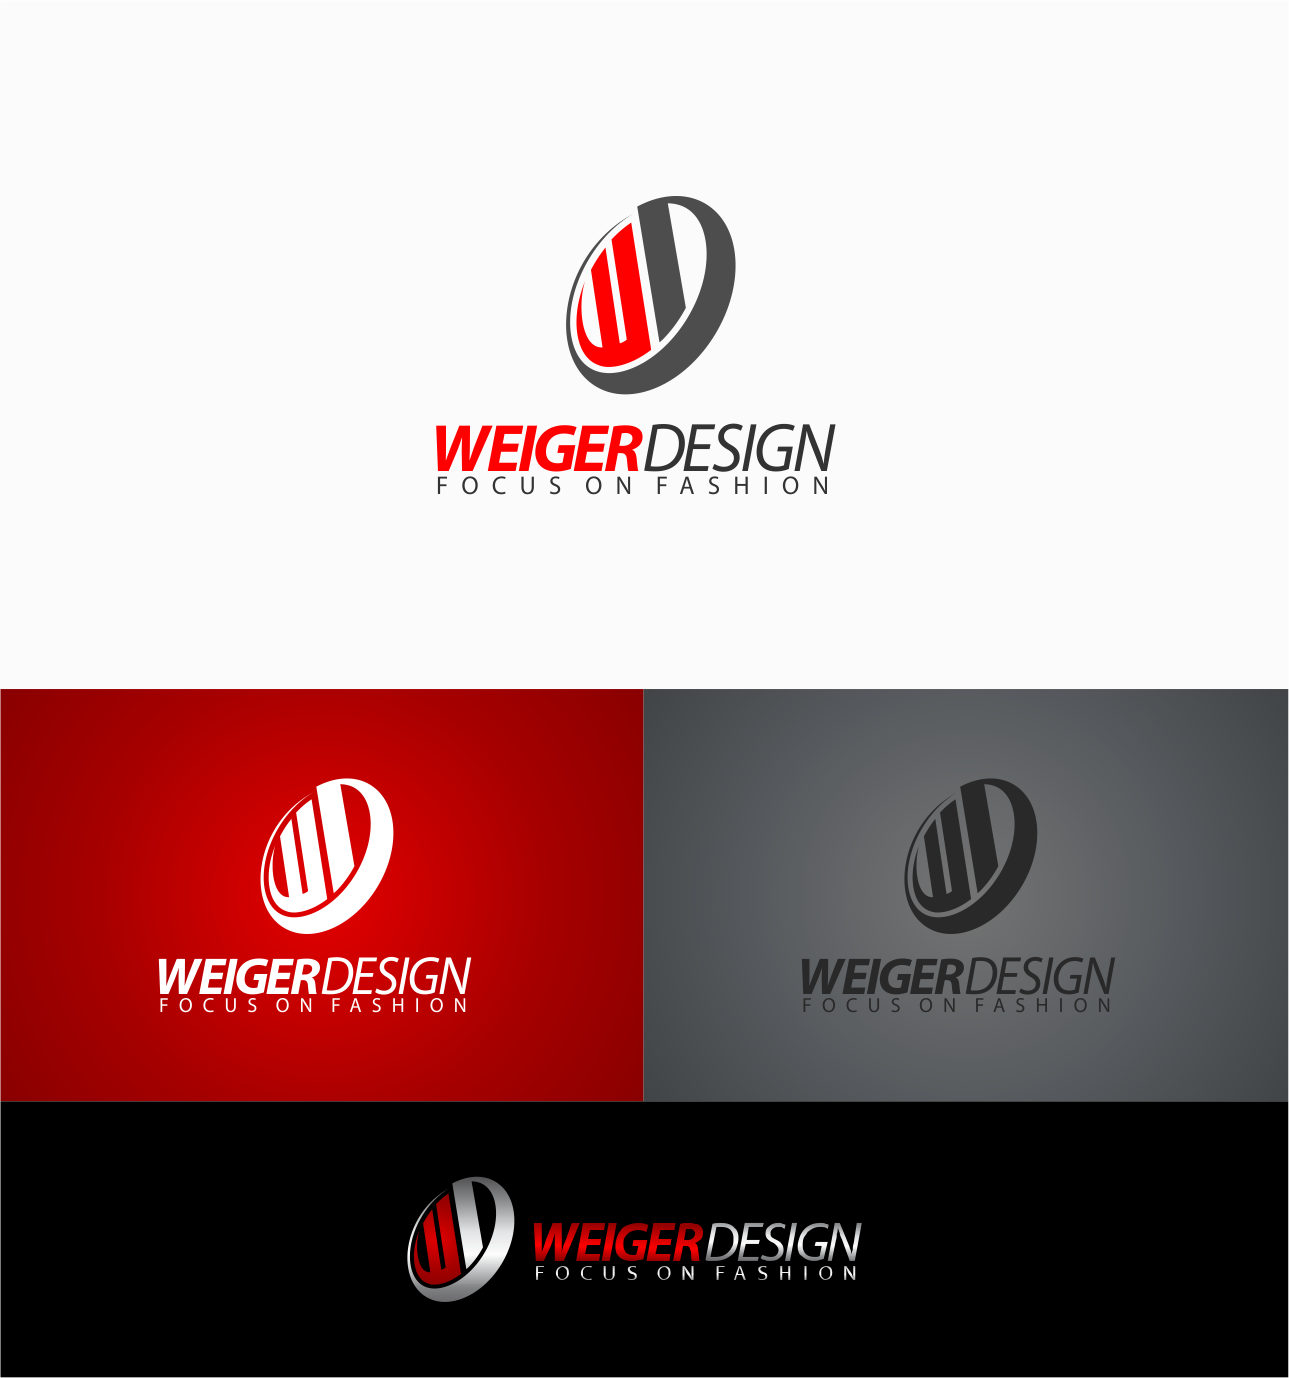 LOGO for an advertising agency, specialized on Fashion